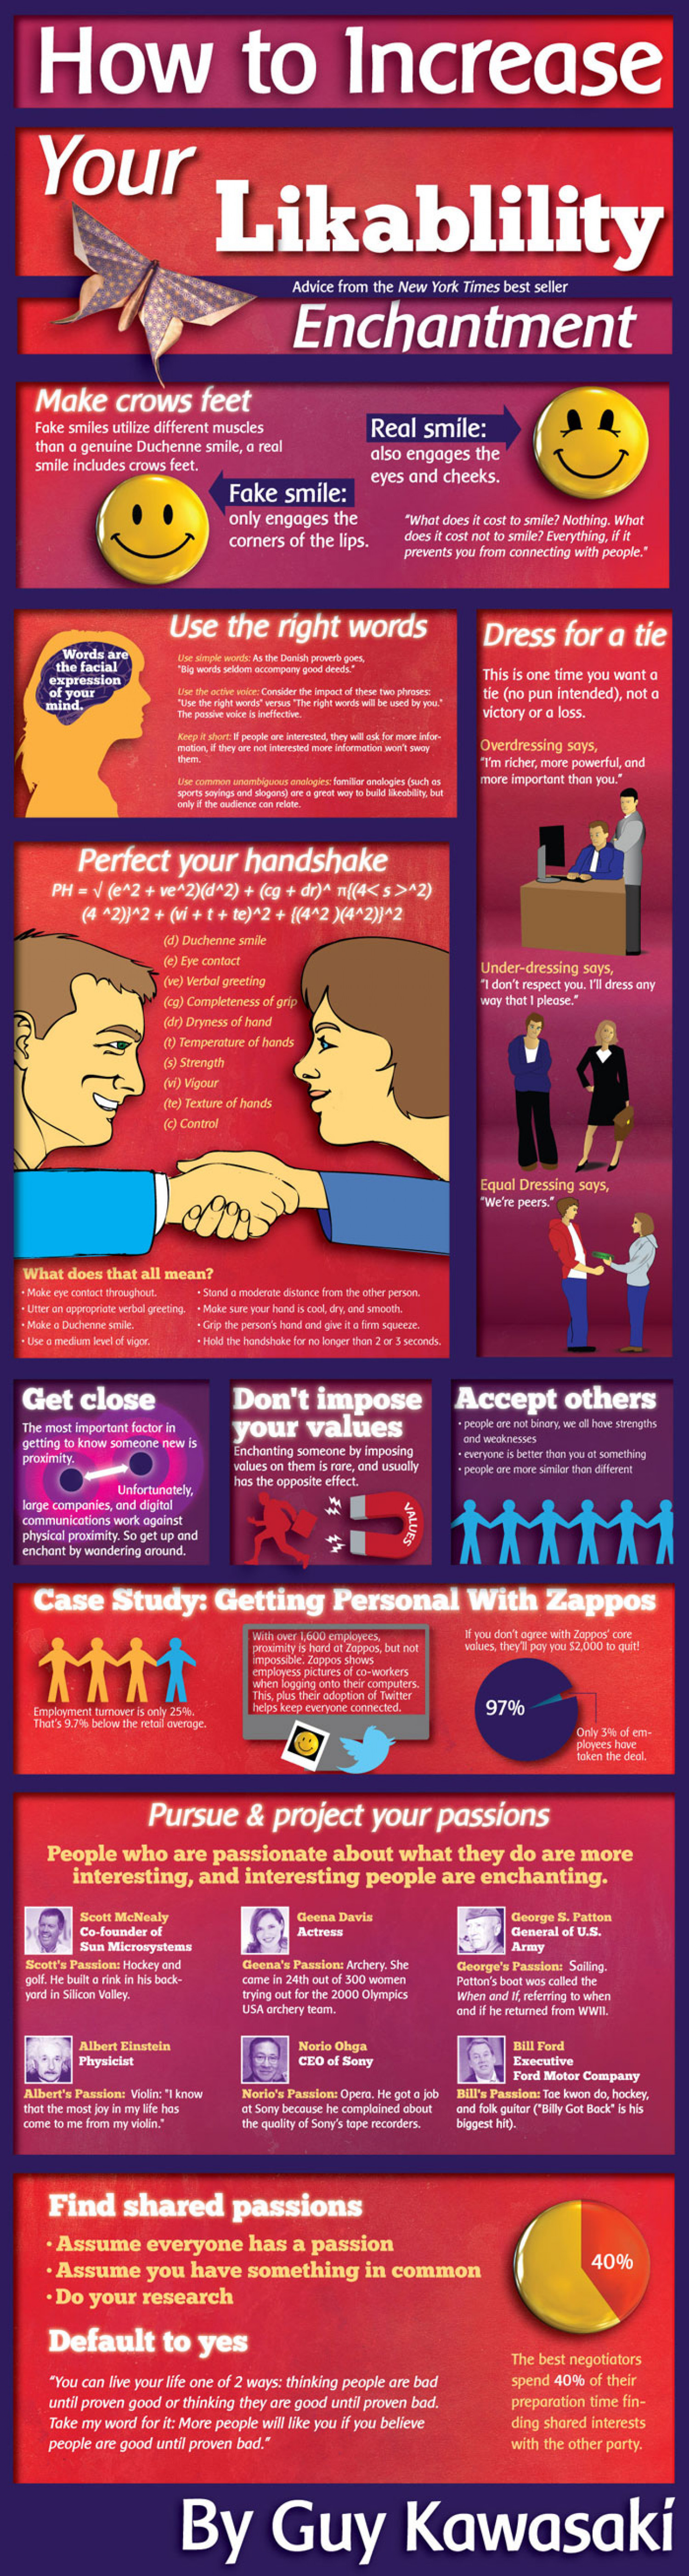 How to Increase Your Likeability Infographic